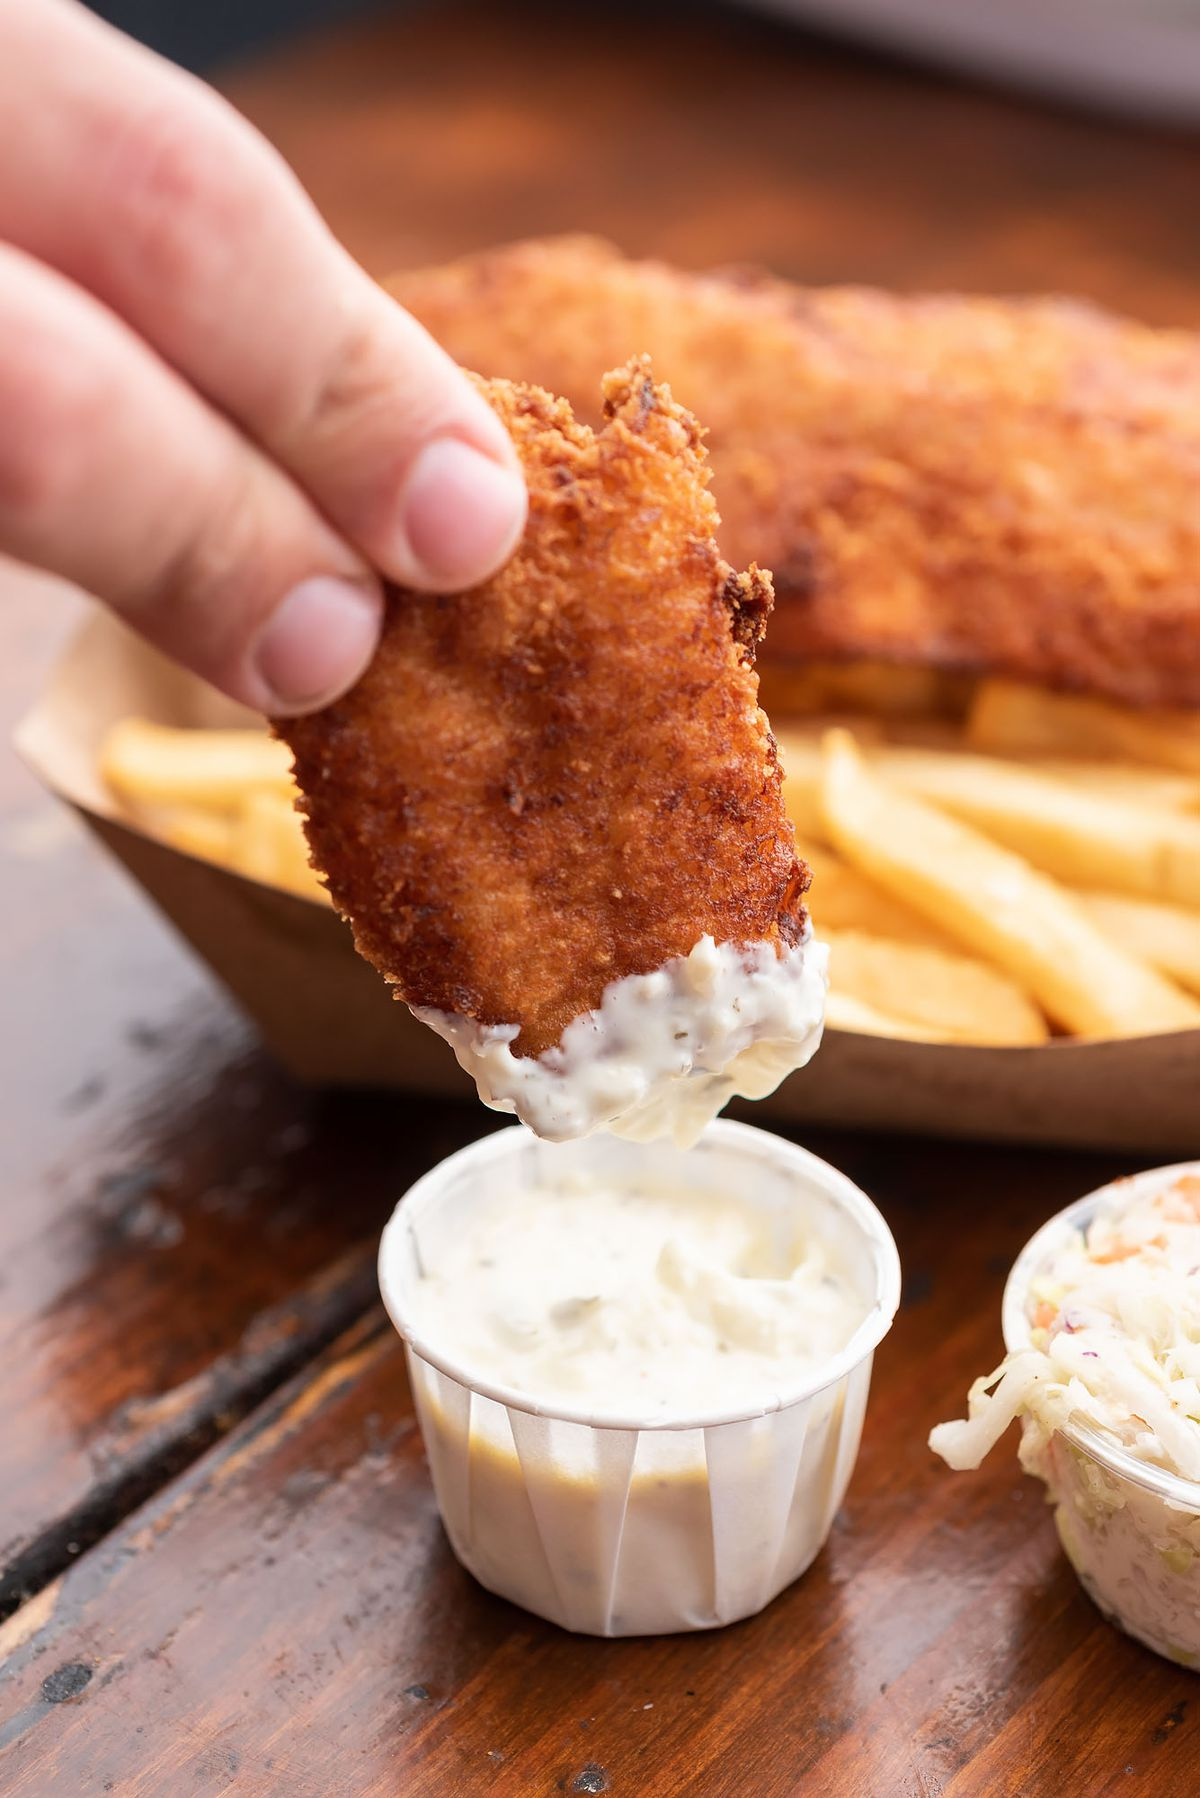 Dunking fried fish in tartar sauce on a wooden table.